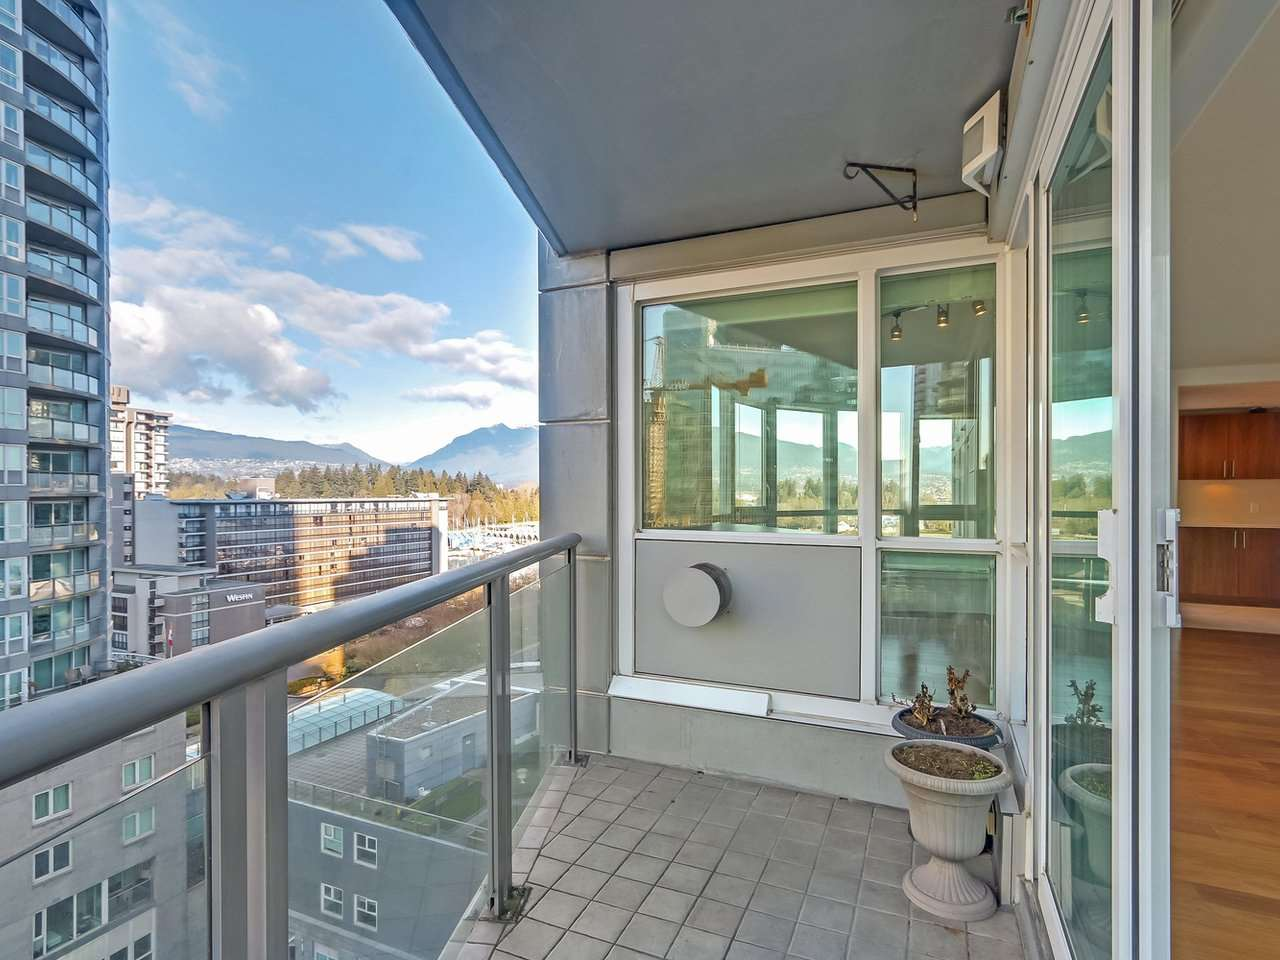 1101 535 NICOLA STREET - Coal Harbour Apartment/Condo for sale, 2 Bedrooms (R2331656) - #13